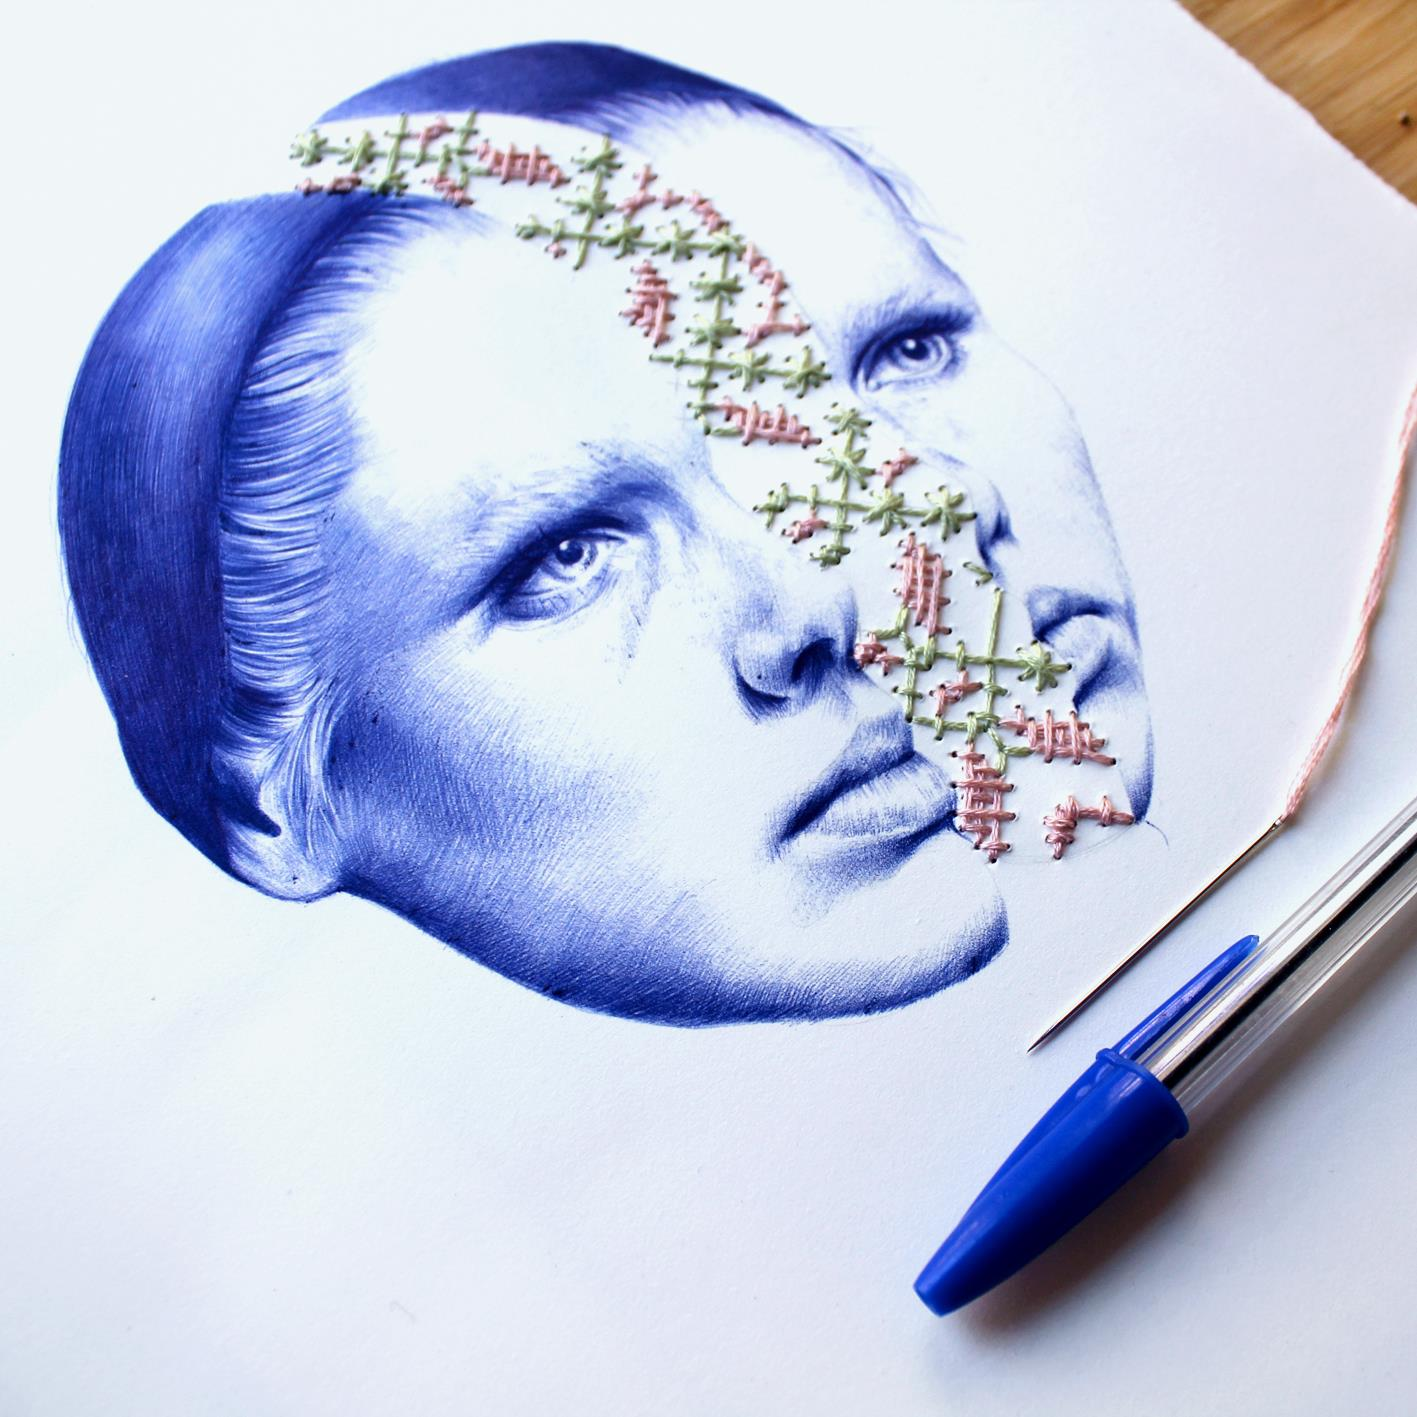 Surreal Drawings Created From Ballpoint Pen and Embroidery